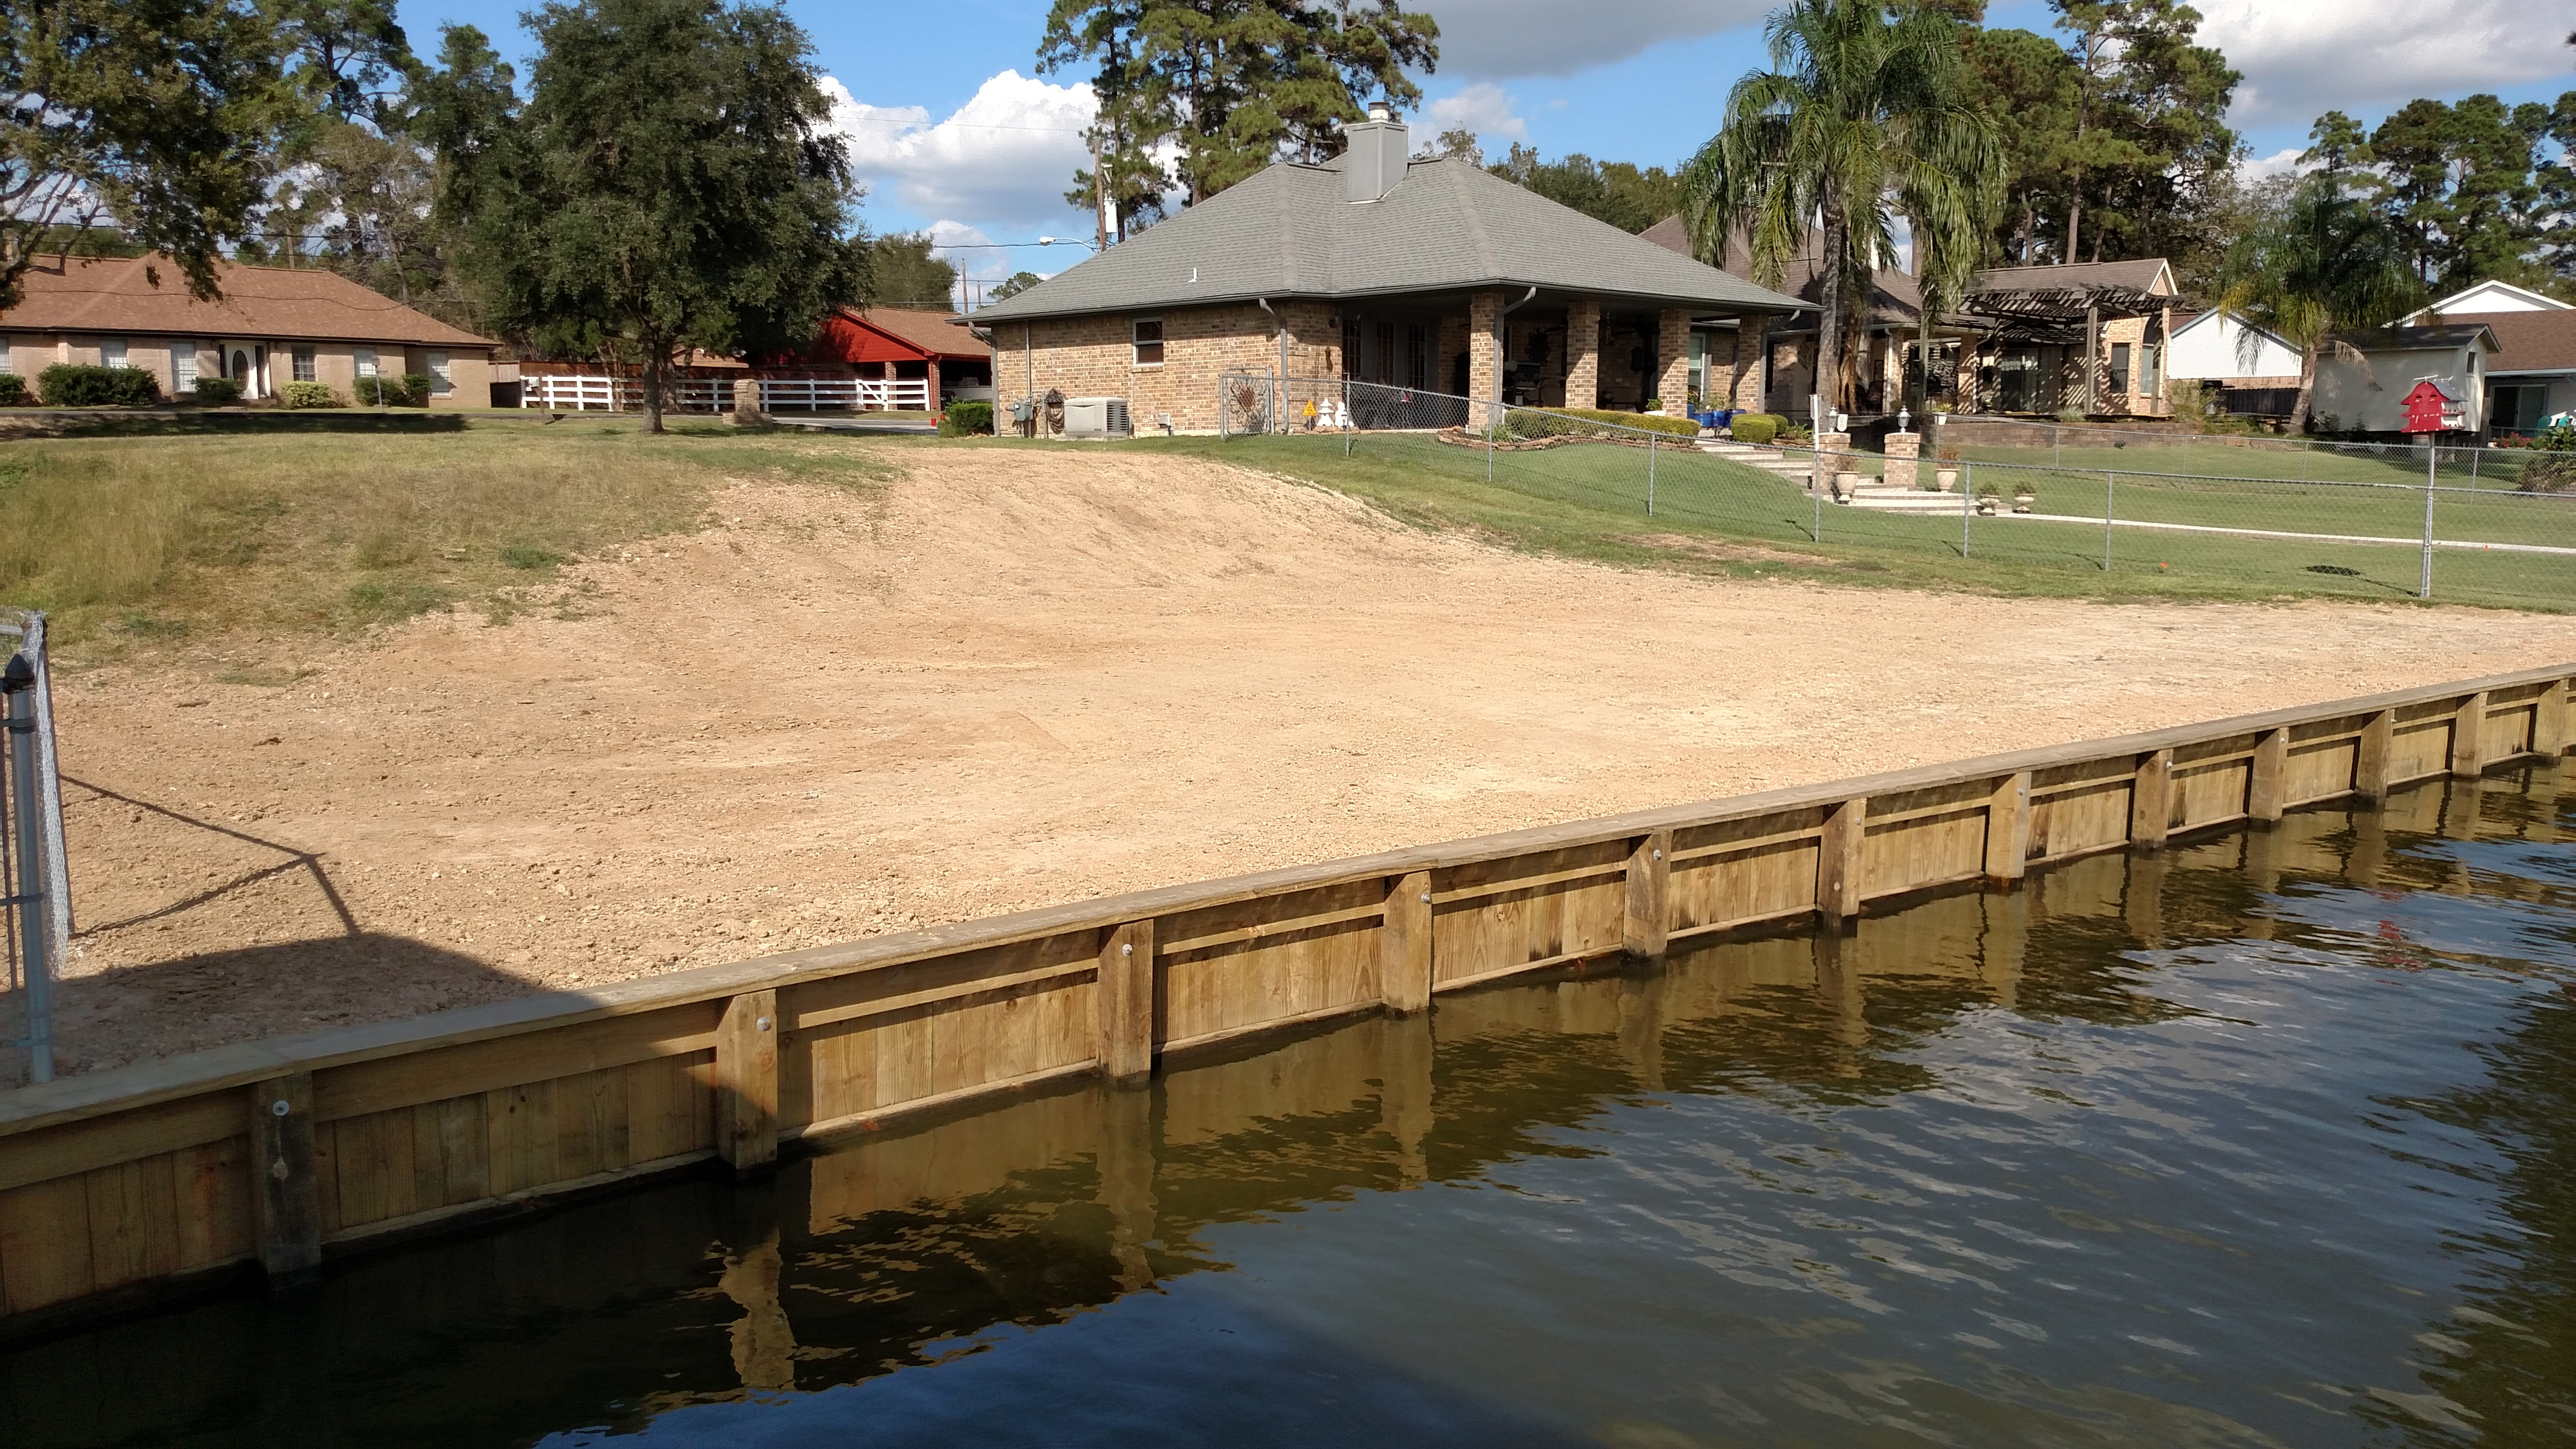 After replacement bulkhead construction and grading on lake houston